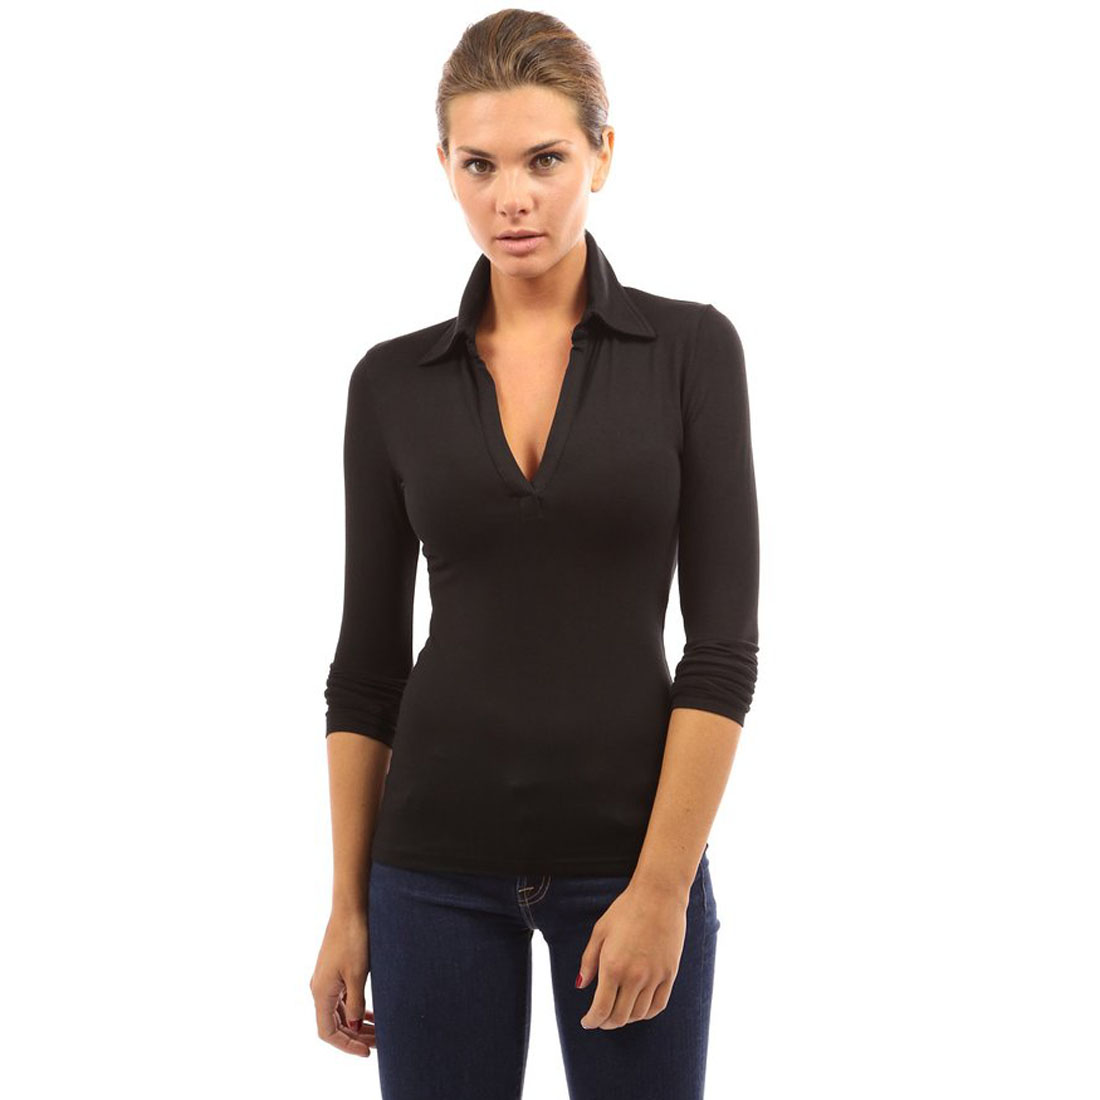 Womens collar blouses deep v neck high stretch long sleeve for Ladies shirts and blouses